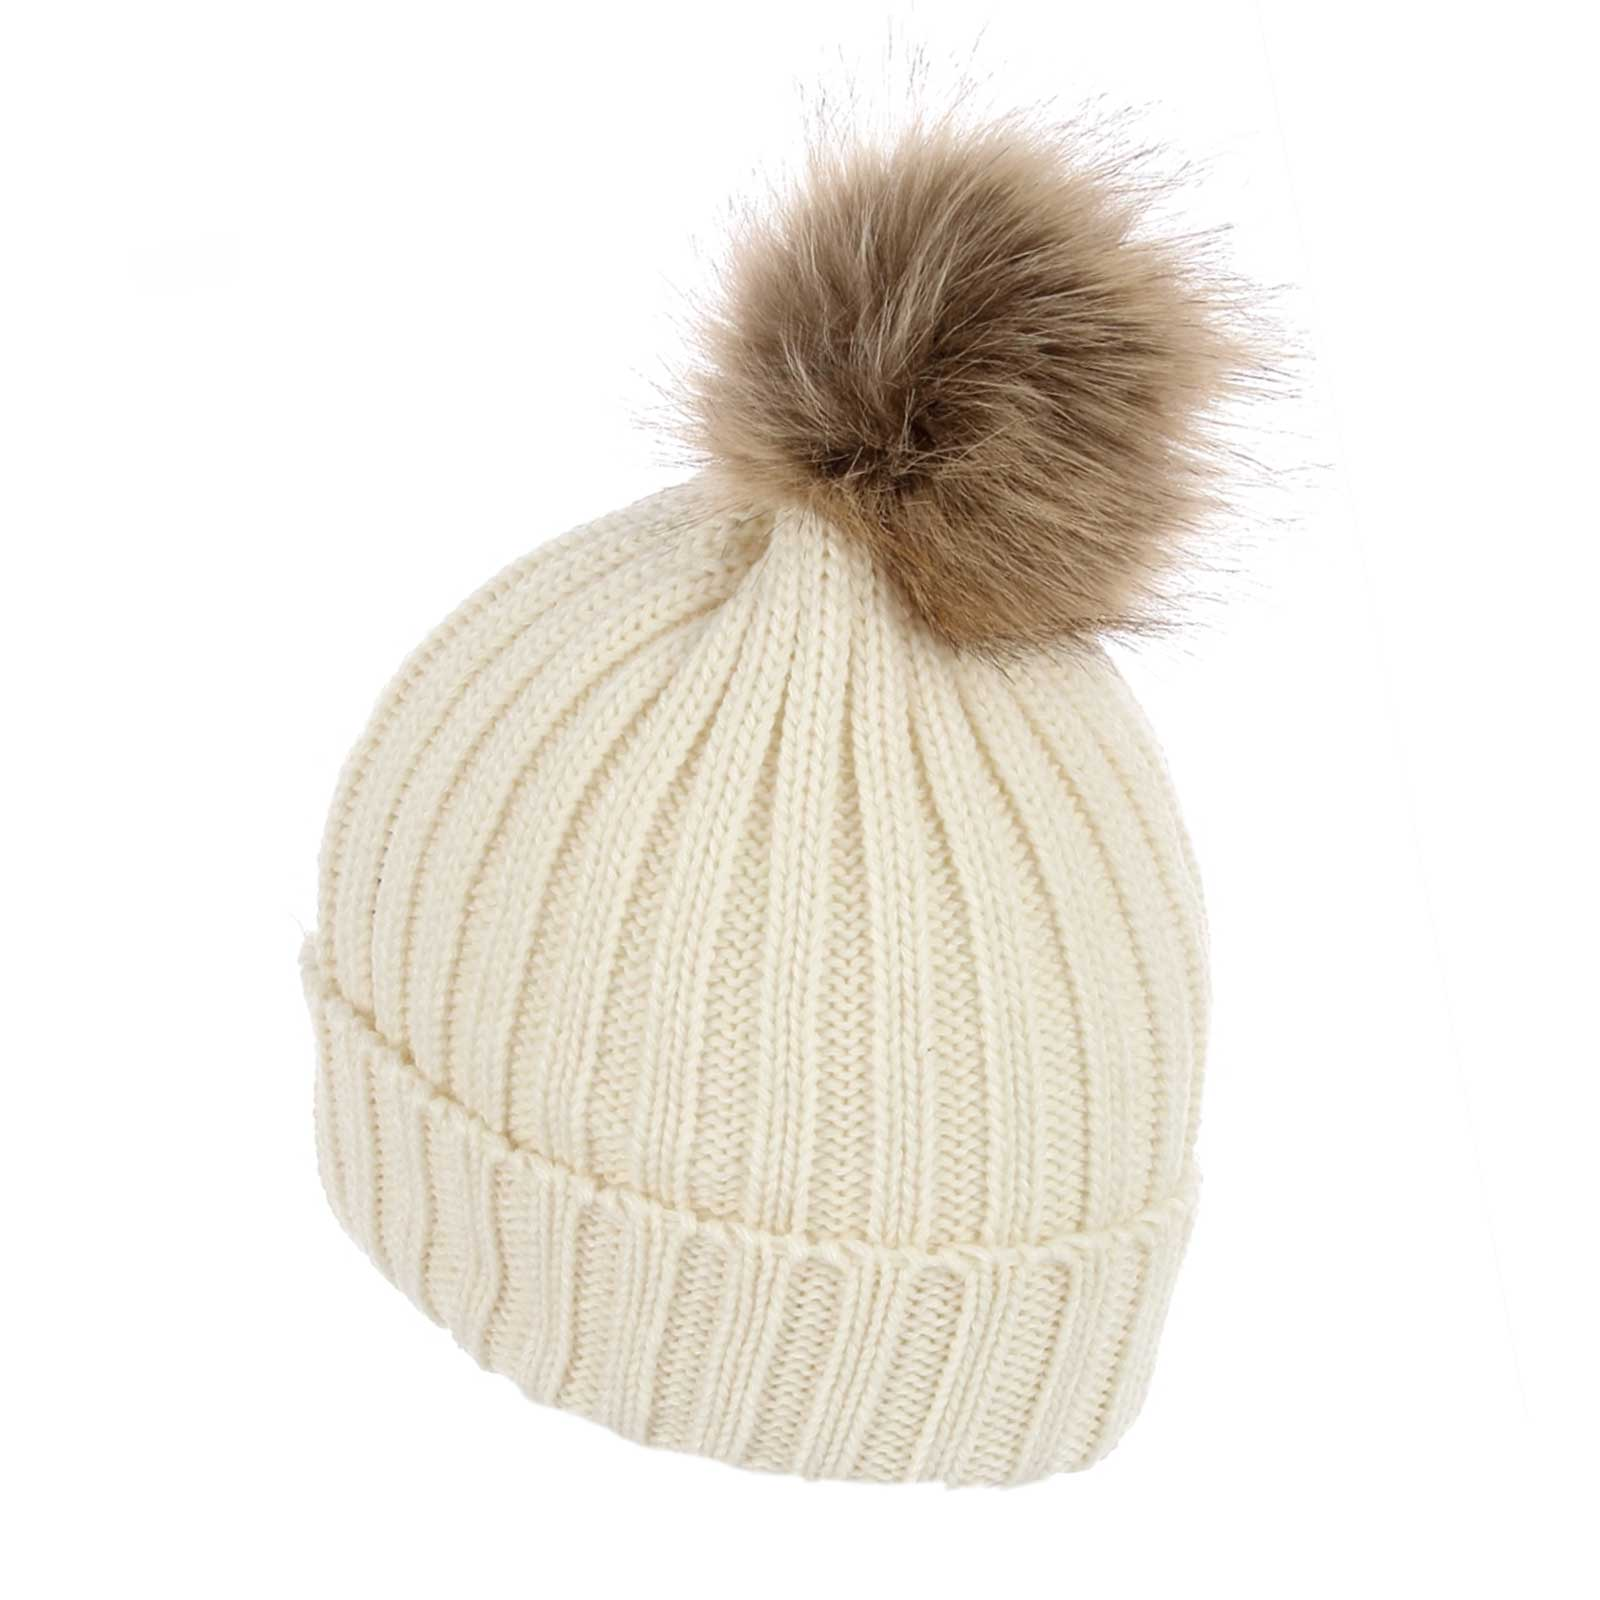 Faux Fur Plain Pom Pom Knitted Beanie Hat Cream – SueHoo 8c53ad59e53